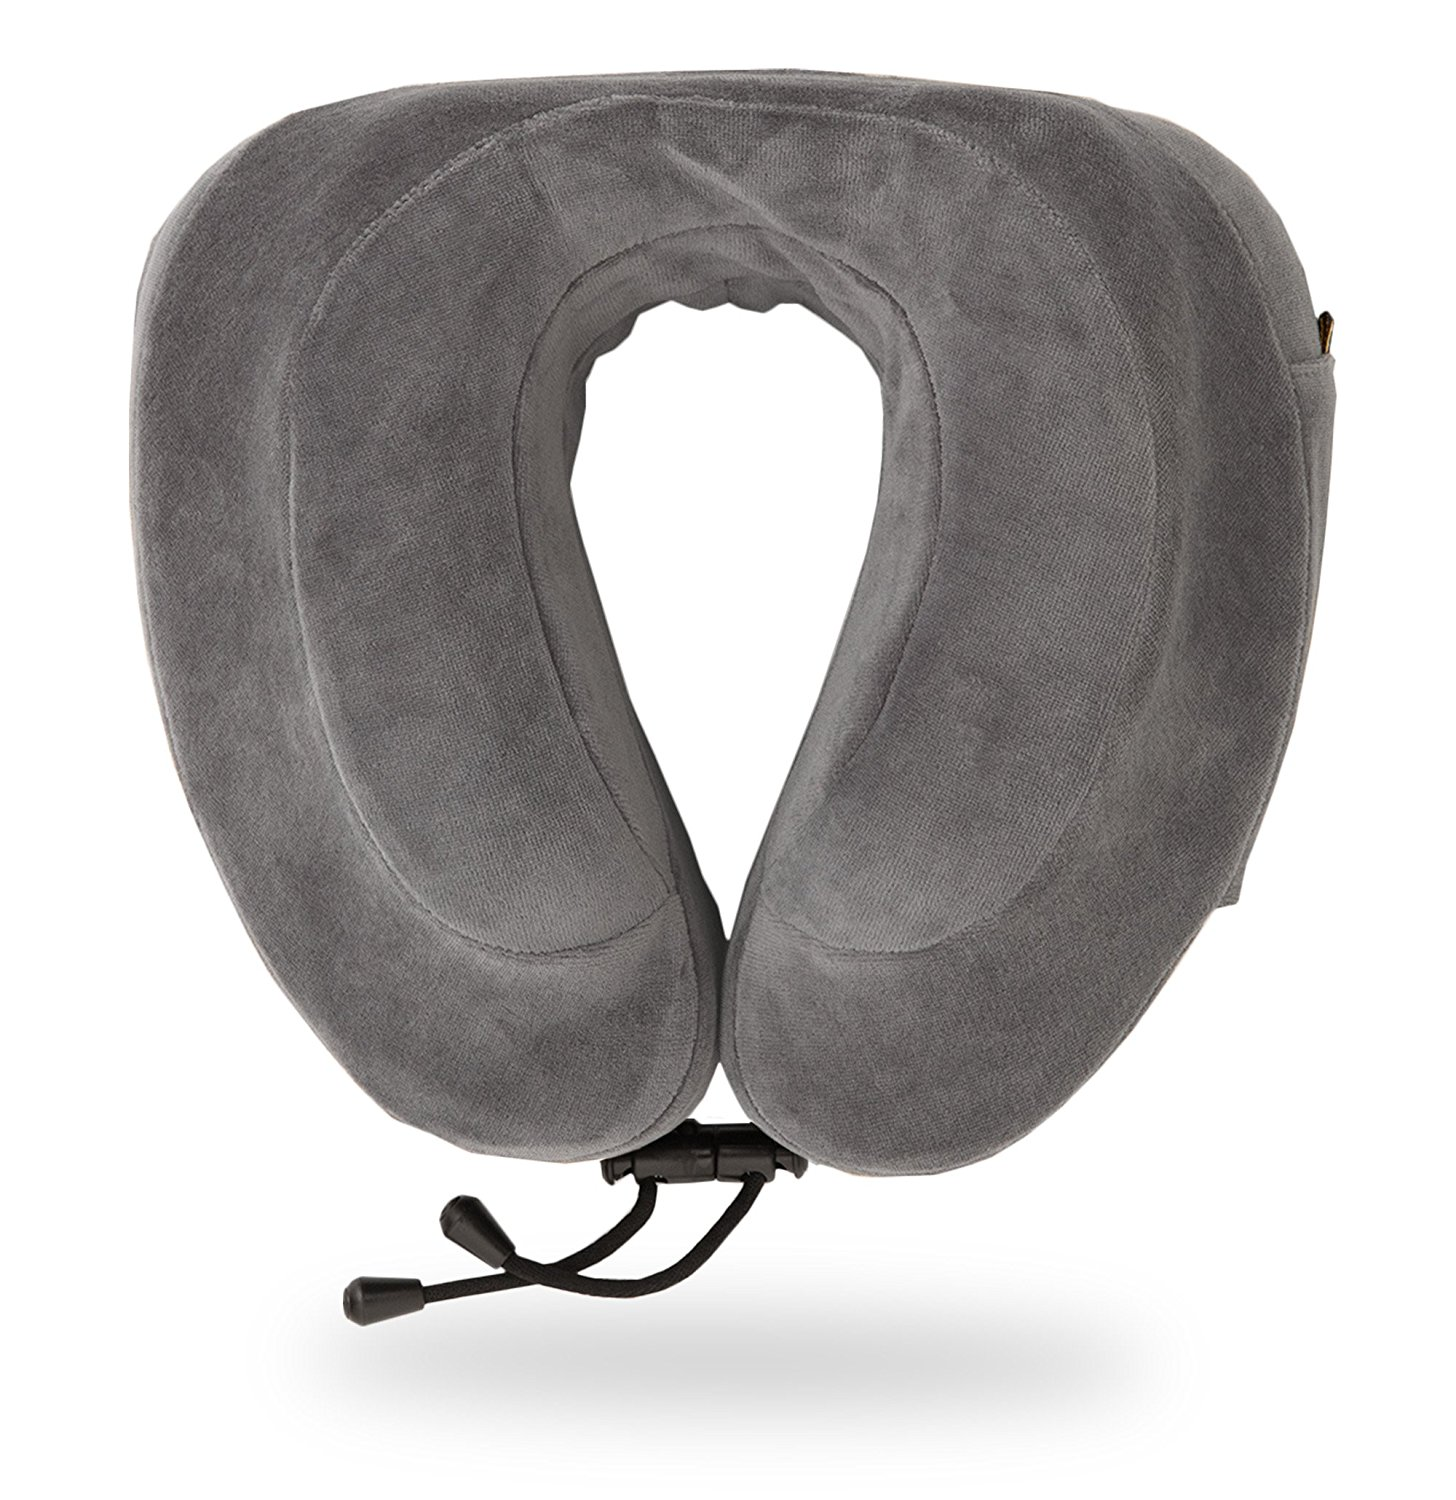 Cabeau Memory Foam Travel Pillow